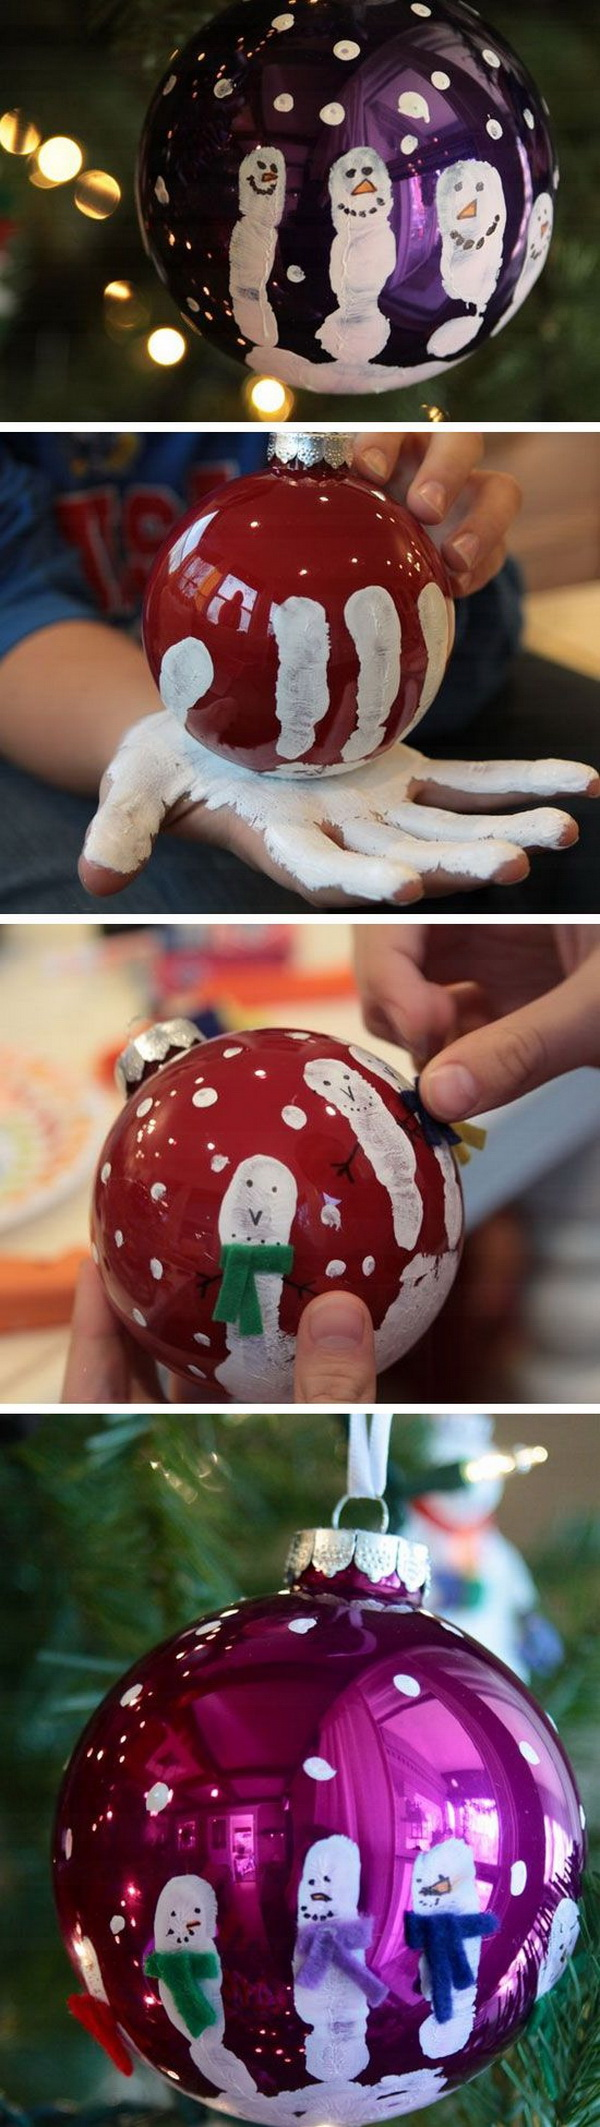 Handprint Christmas Ornaments. Create some cute handprint Christmas tree ornaments using green sparkly salt dough and paints!